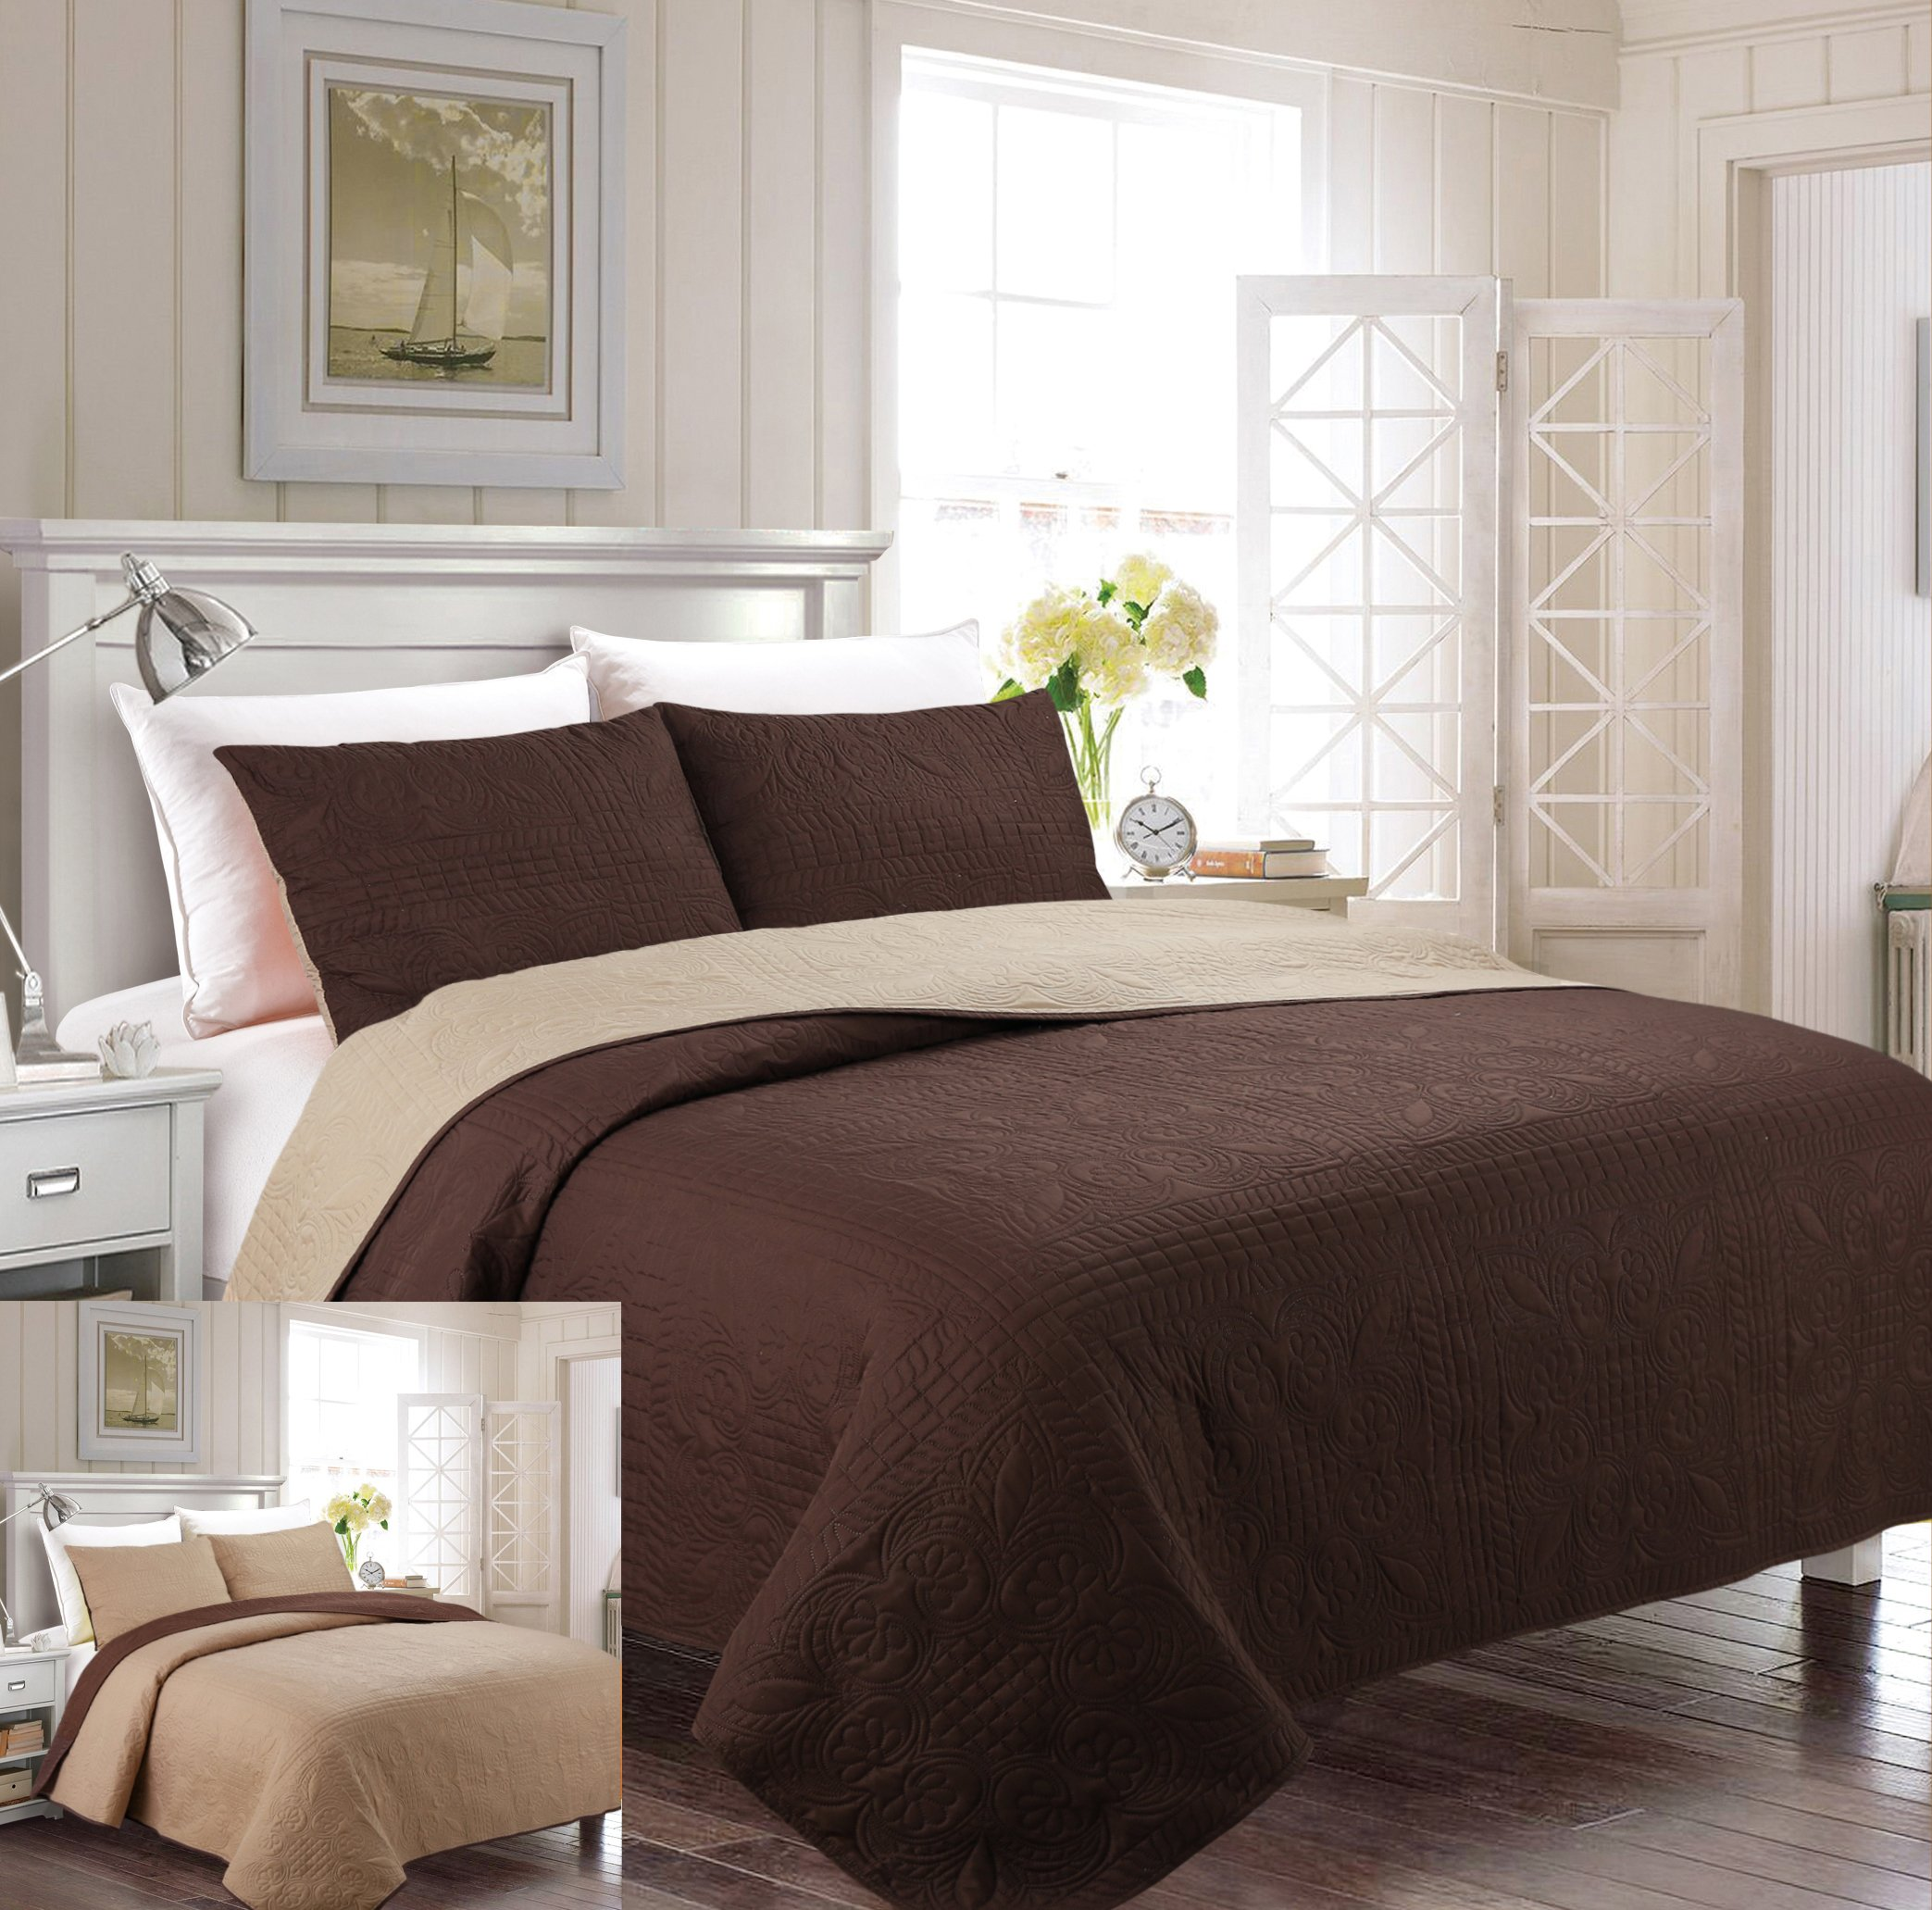 Fancy Collection 3pc Luxury Bedspread Coverlet Embossed Bed Cover Solid Reversible Coffee /Taupe Over Size New King/California King 118'' X 106''